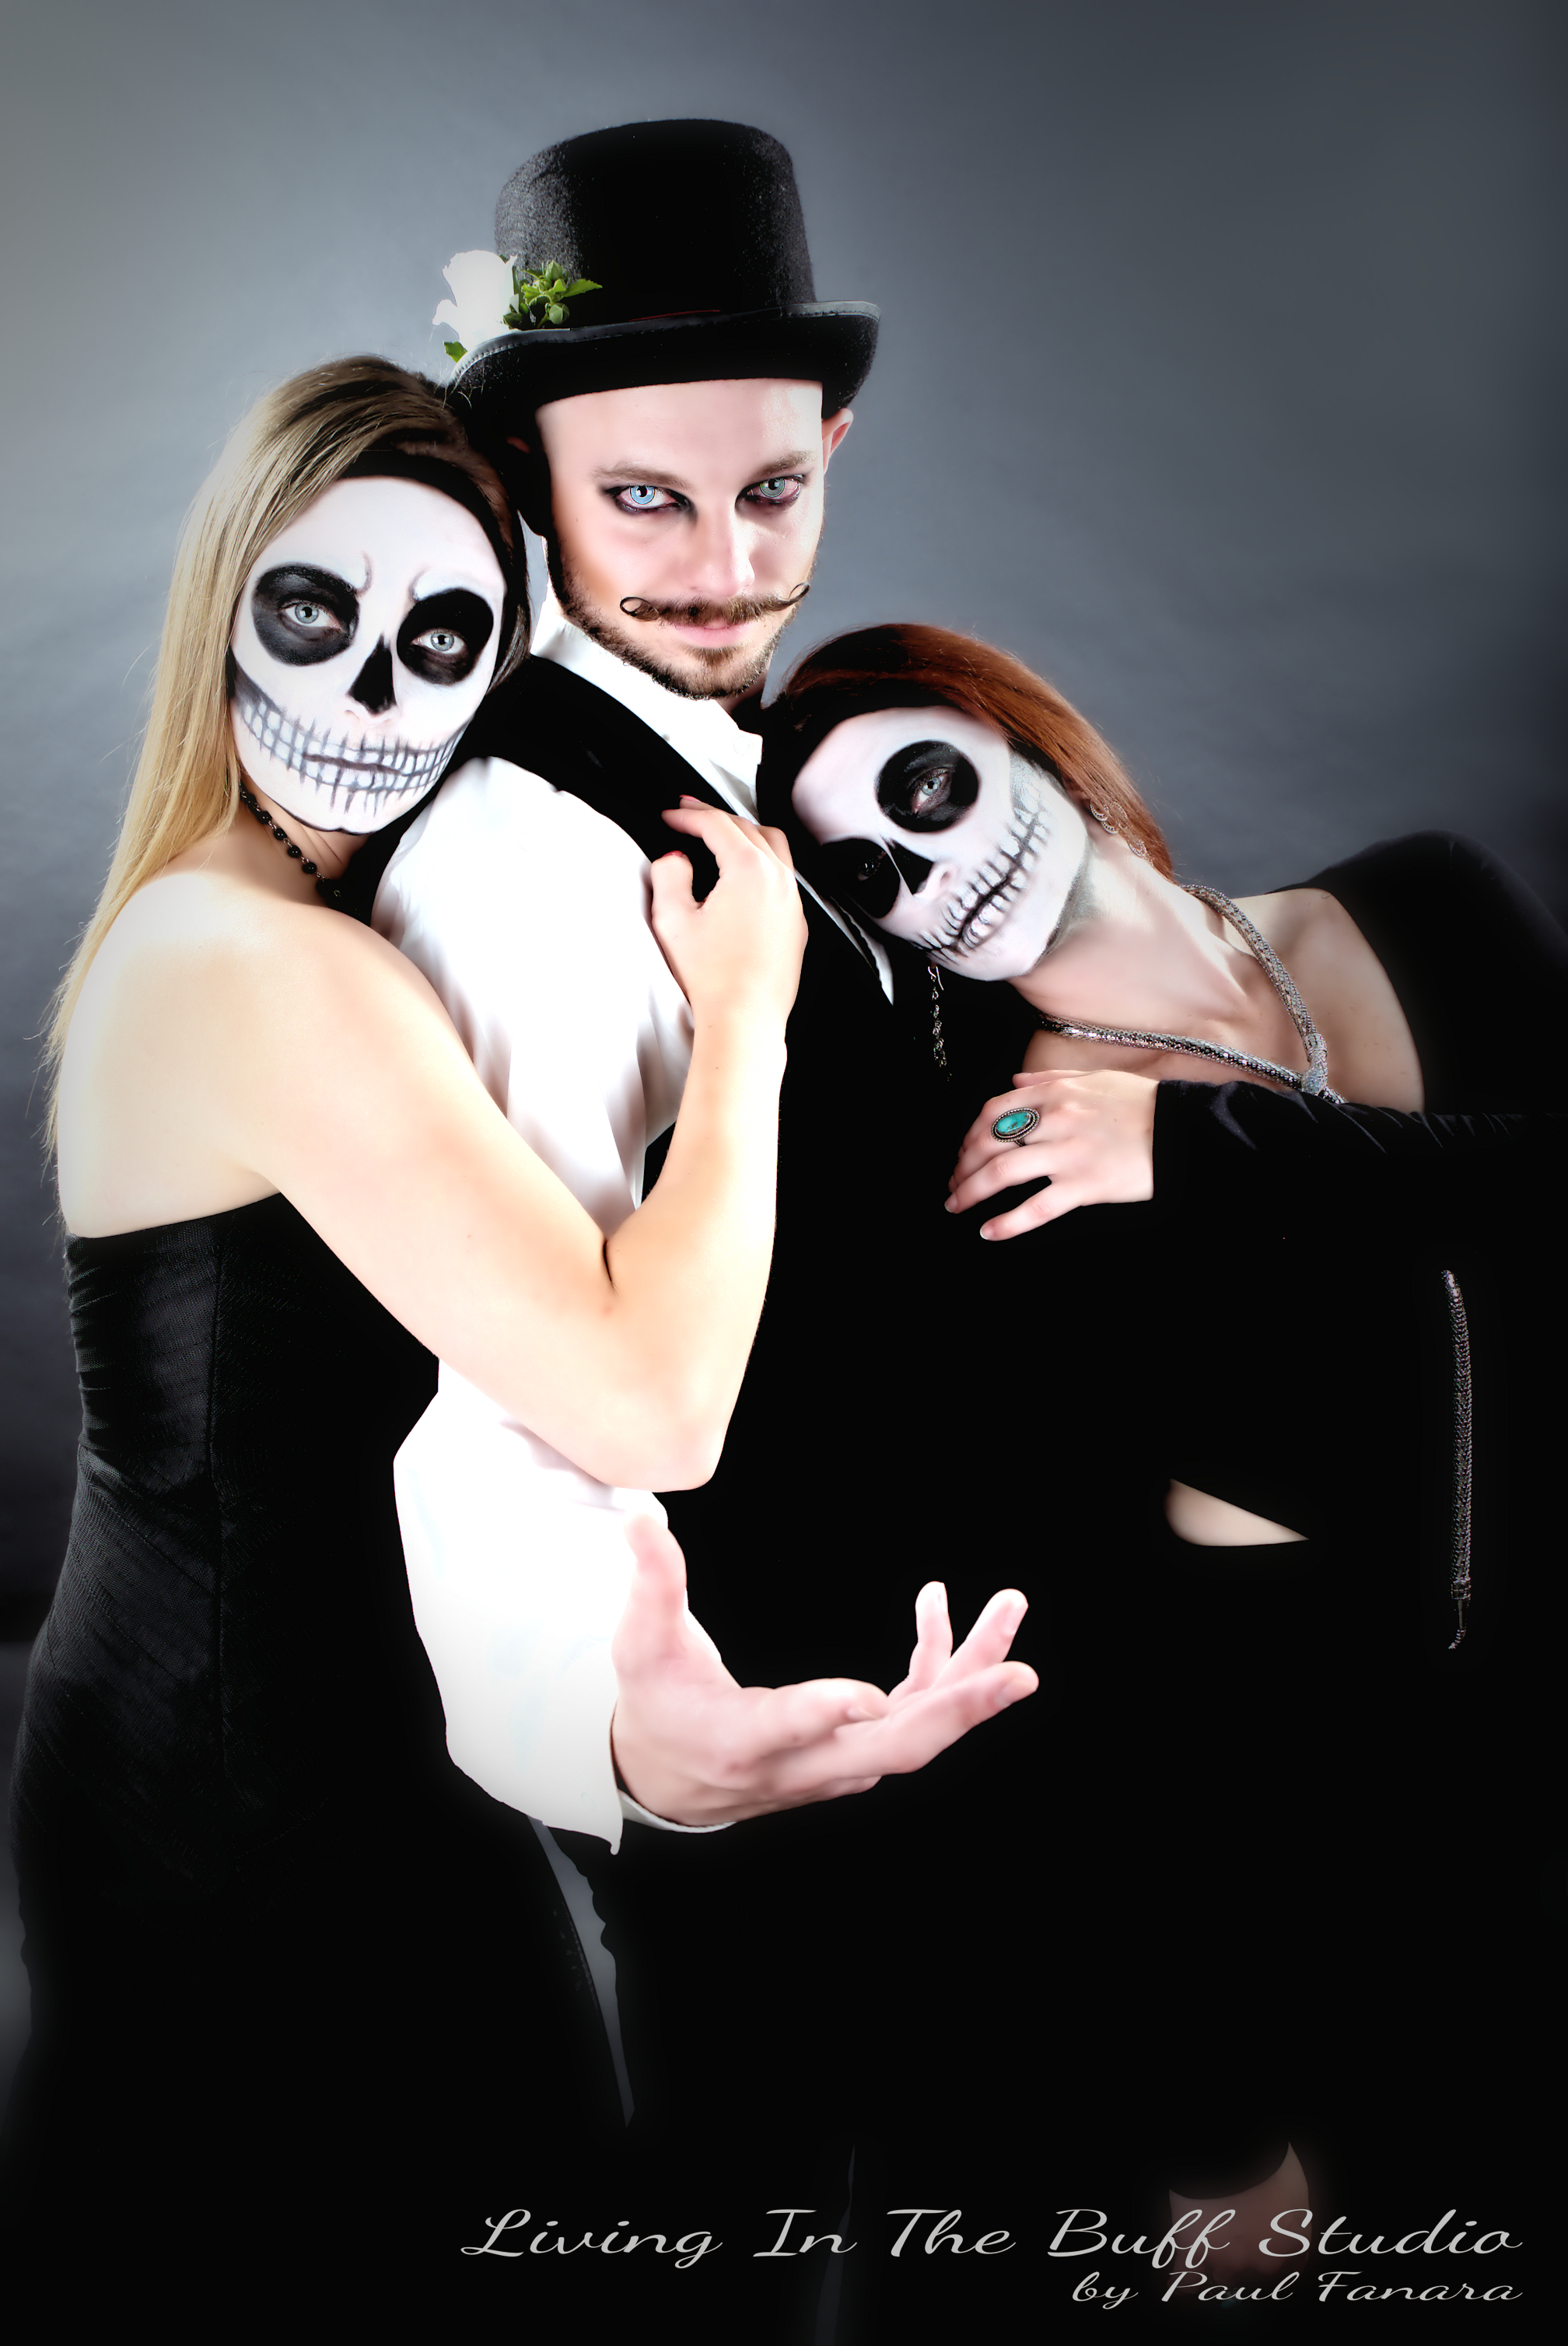 Promo shoot for Buffalo's Witches Ball - Featuring Jessica, Mike and Cortney